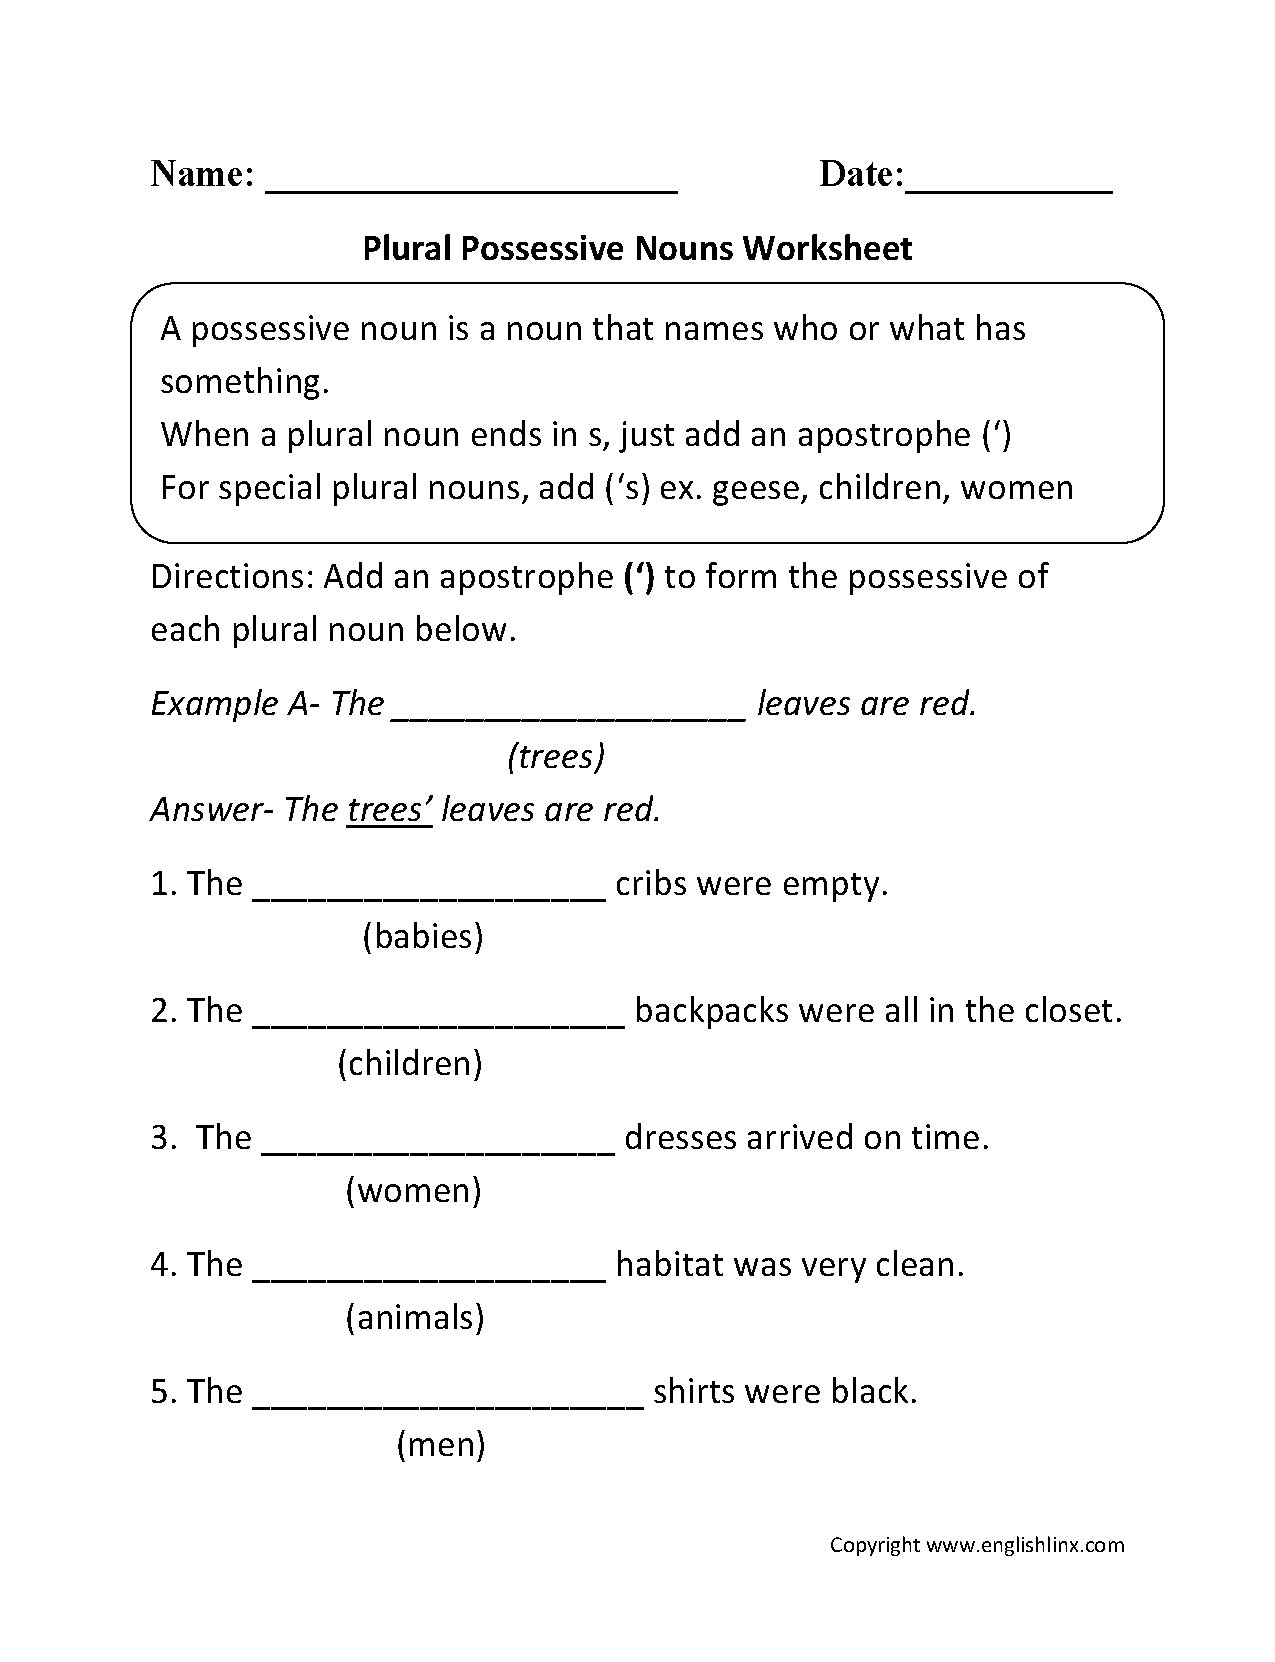 Aldiablosus  Nice Nouns Worksheets  Possessive Nouns Worksheets With Inspiring Possessive Nouns Worksheets With Beautiful Preposition Worksheets Th Grade Also Ear Worksheet In Addition The Physical World Continents And Oceans Worksheet And  Credit Limit Worksheet As Well As Free Printable Color By Number Worksheets Additionally Greek Mythology Worksheet From Englishlinxcom With Aldiablosus  Inspiring Nouns Worksheets  Possessive Nouns Worksheets With Beautiful Possessive Nouns Worksheets And Nice Preposition Worksheets Th Grade Also Ear Worksheet In Addition The Physical World Continents And Oceans Worksheet From Englishlinxcom